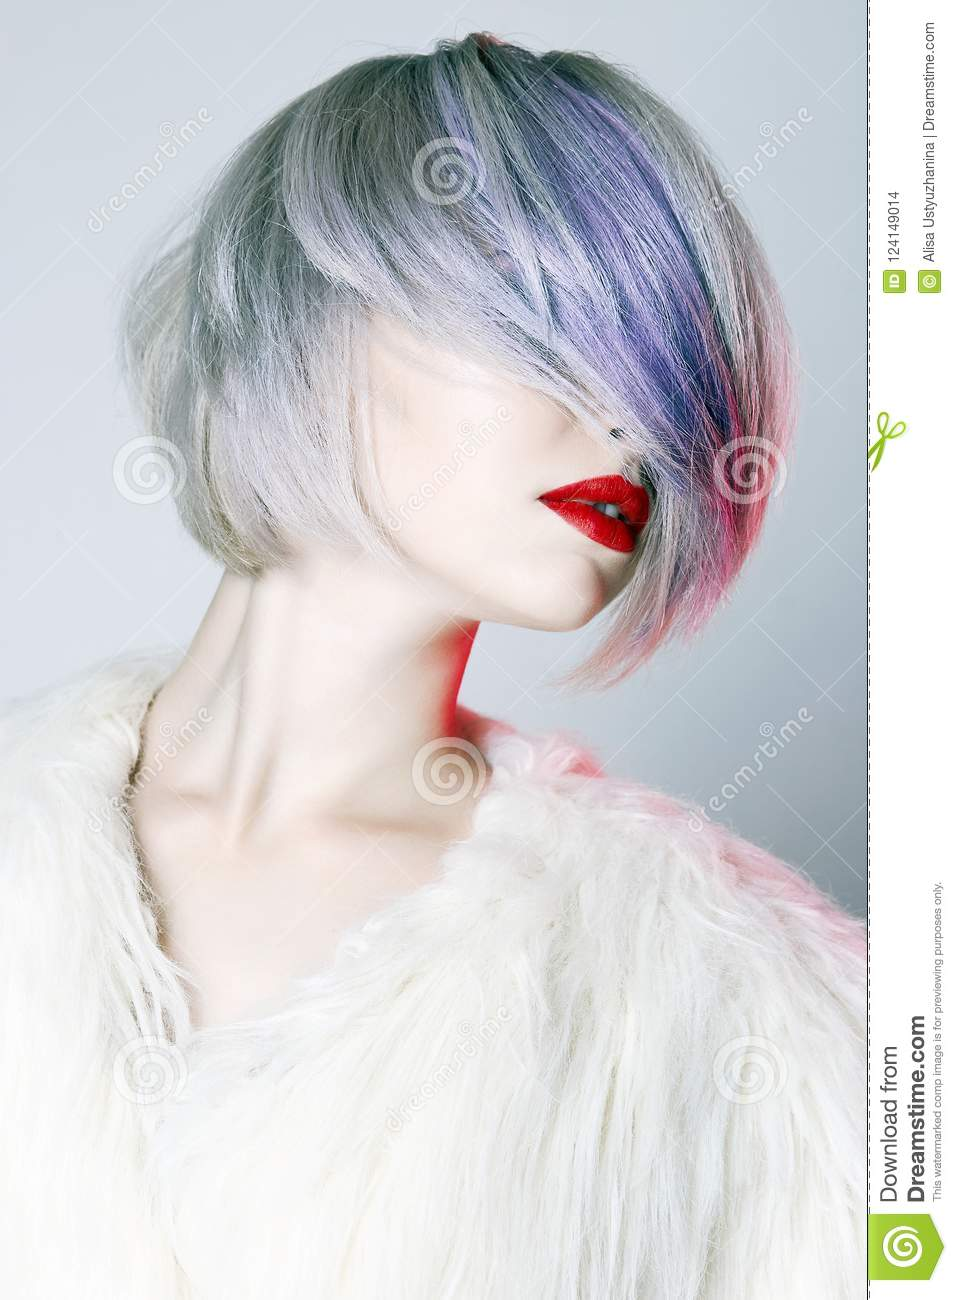 Beautiful Girl With Colorful Hairstyle Stock Photo Image Of Cute